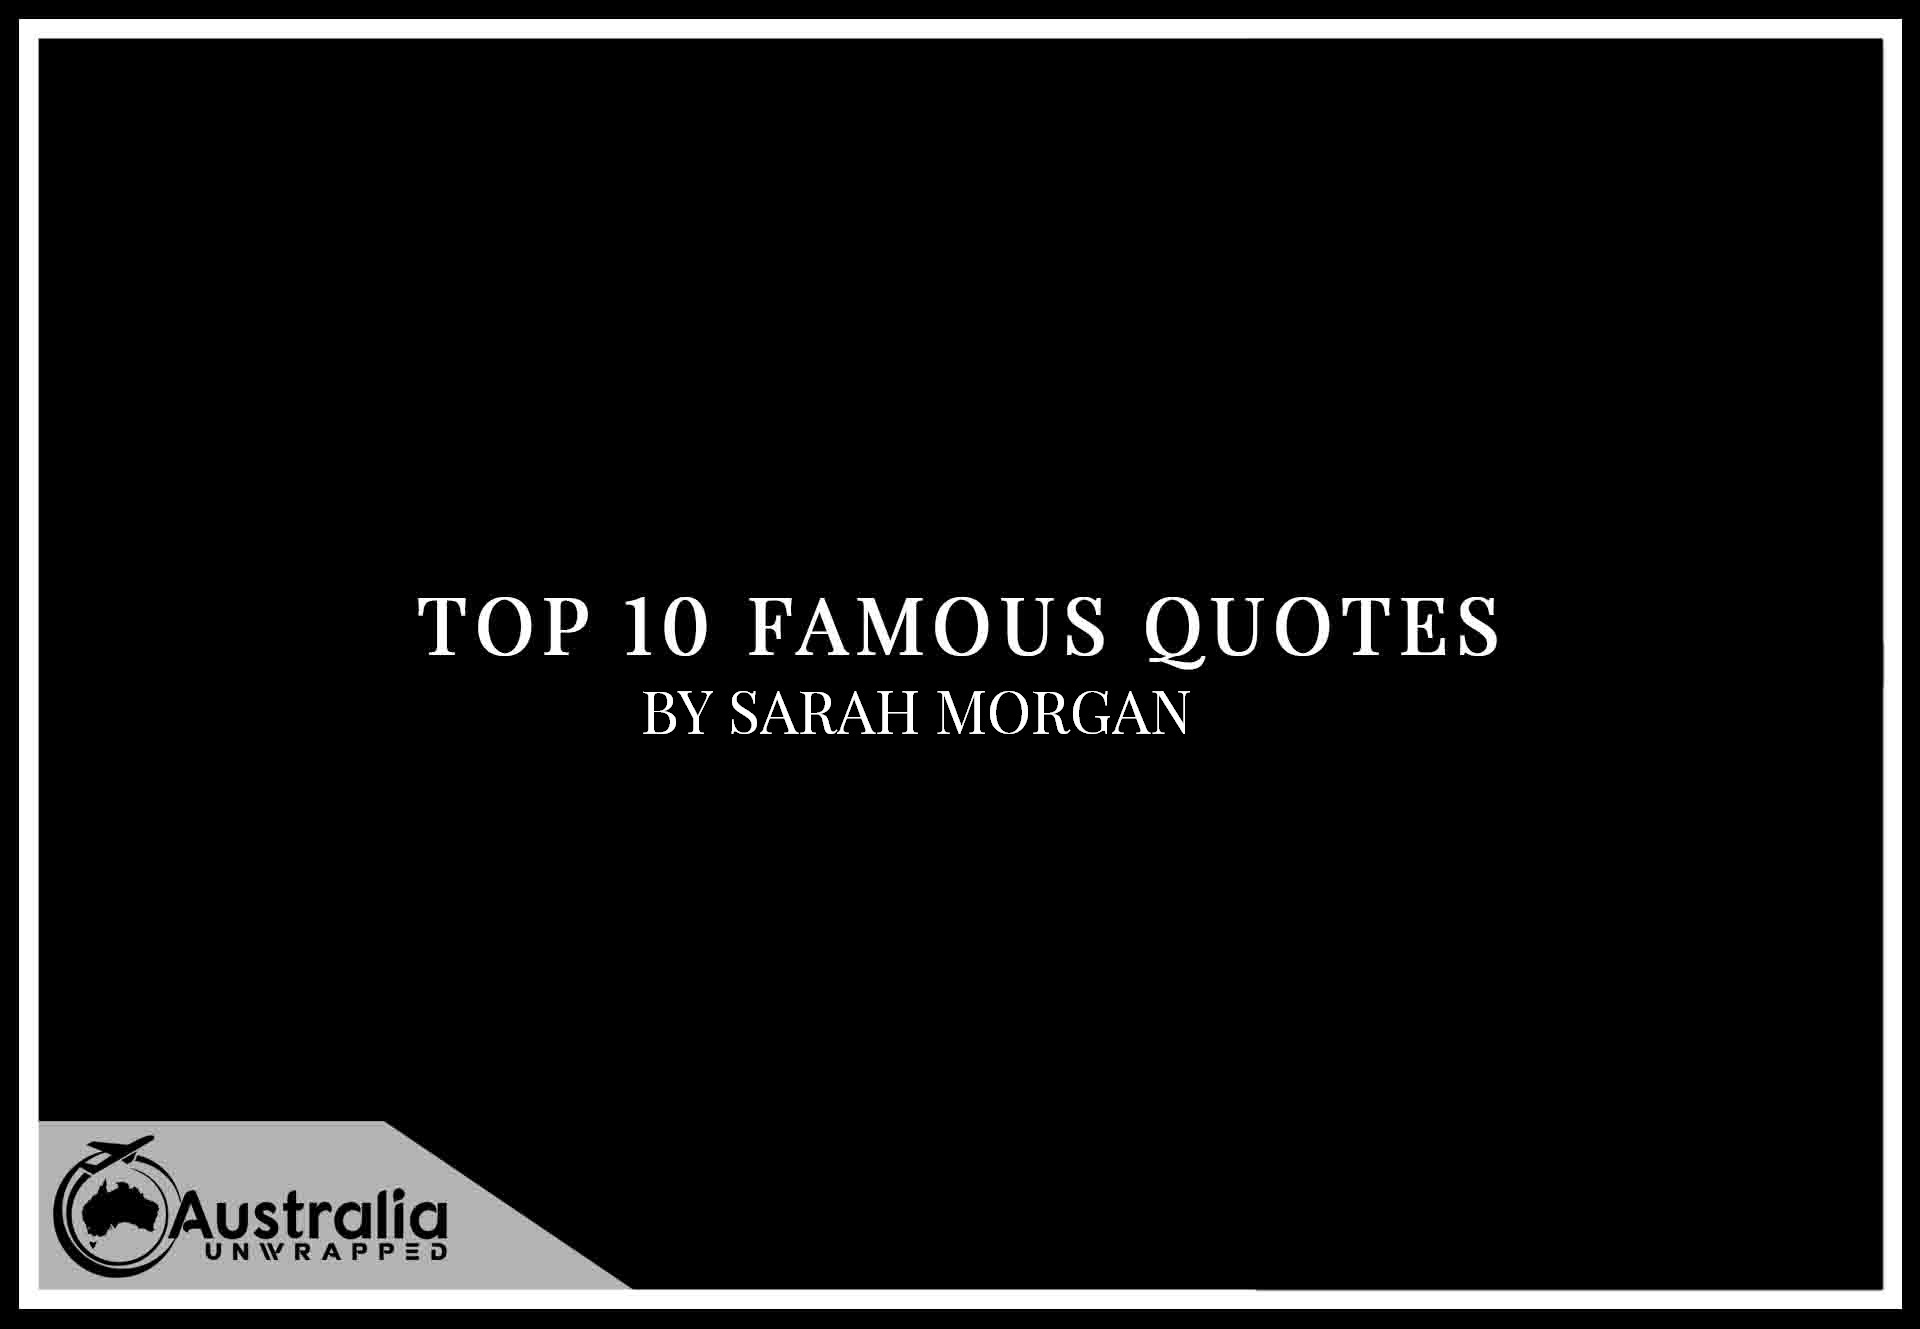 Top 10 Famous Quotes by Author Sarah Morgan